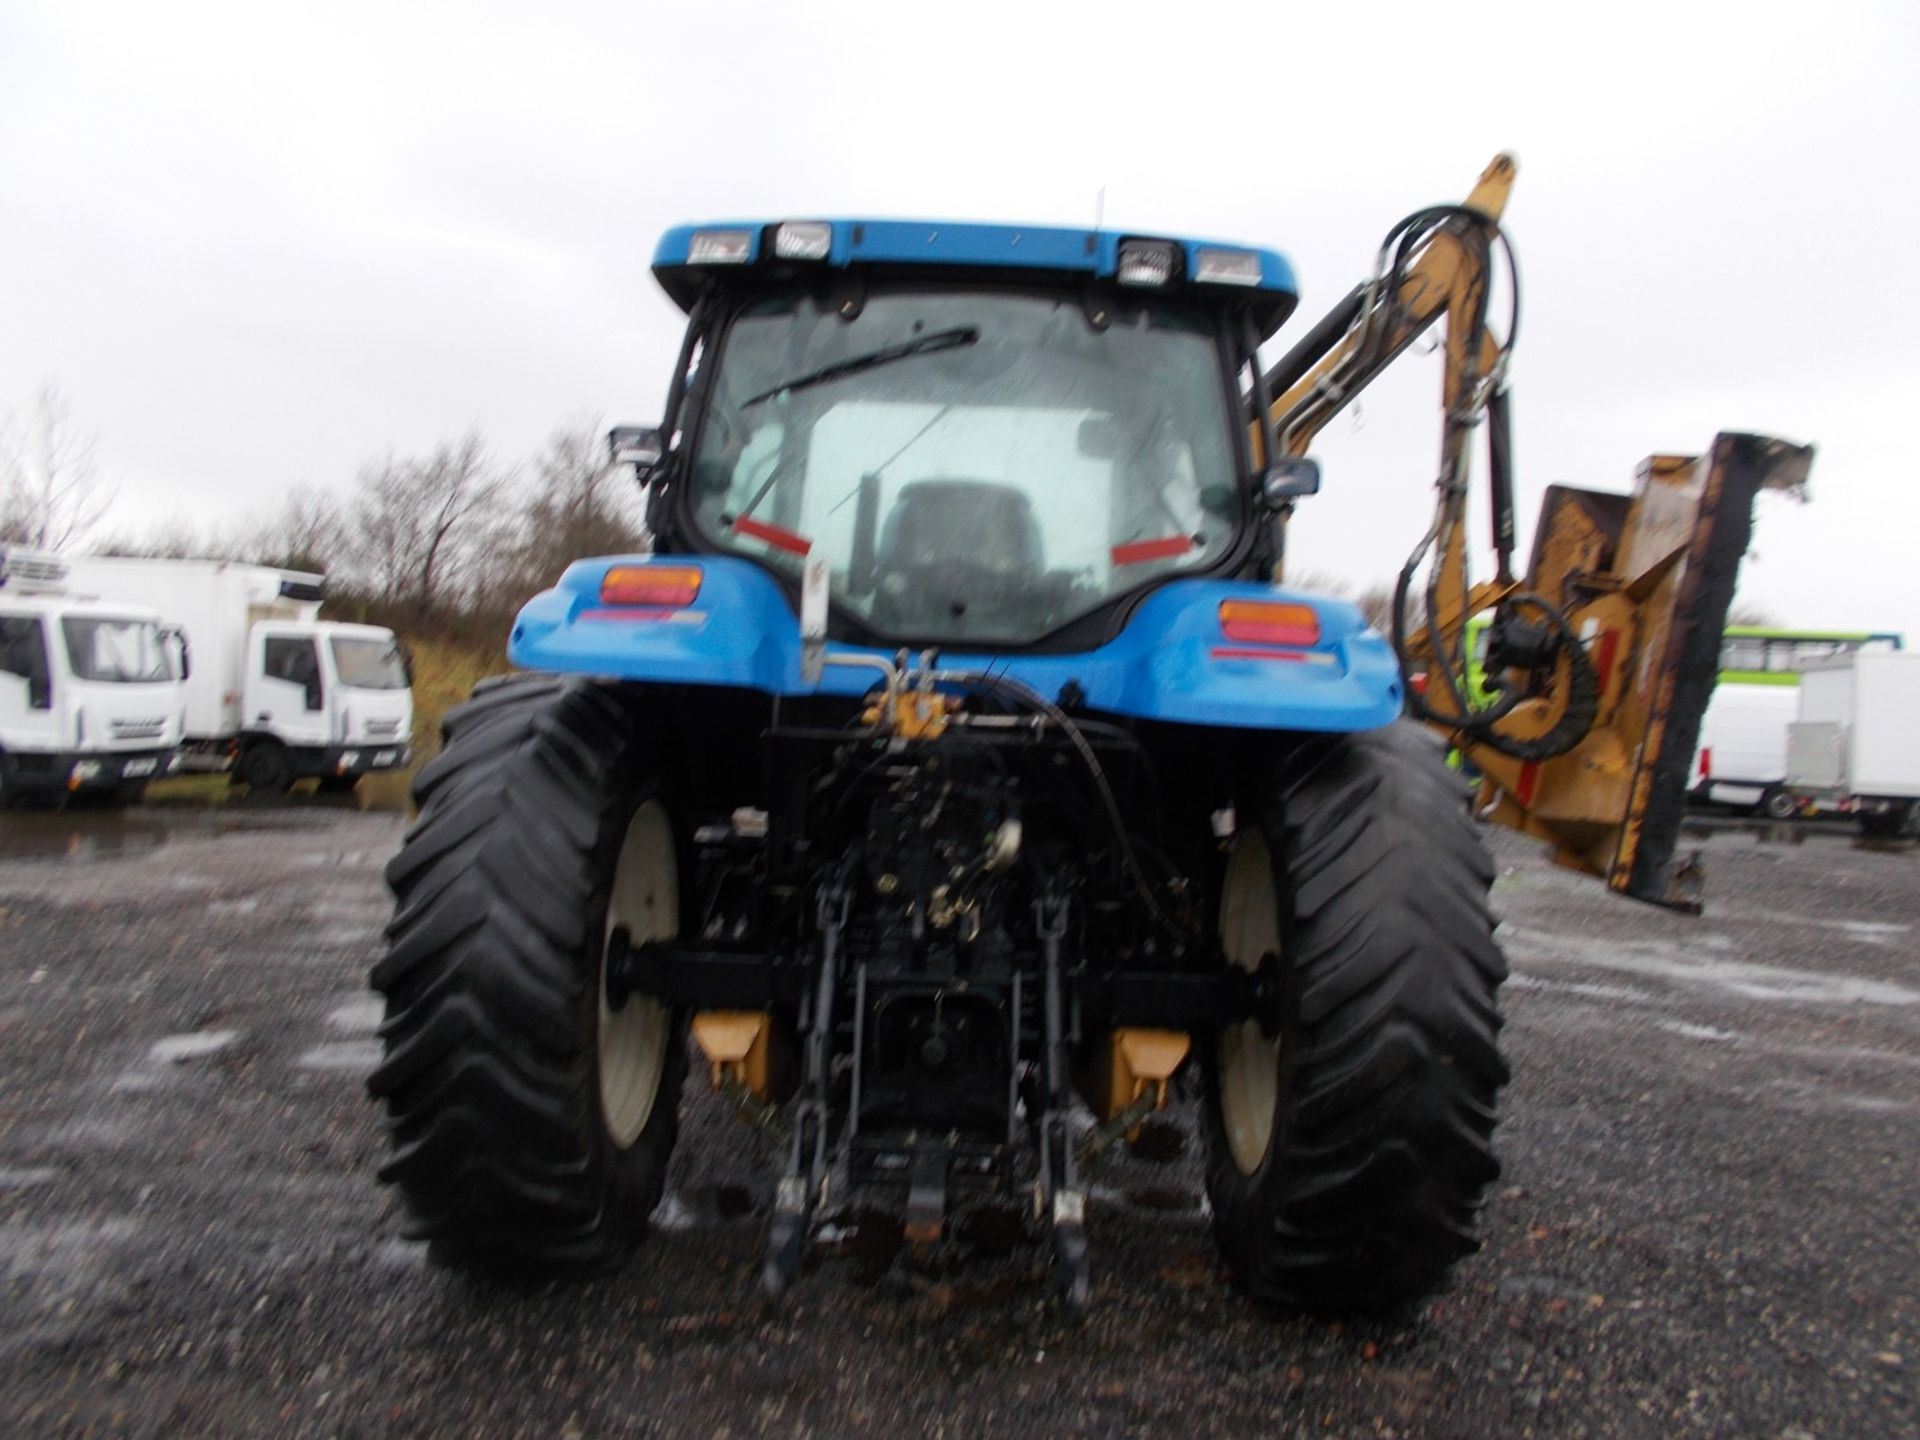 2003 NEW HOLLAND TS100A TRACTOR WITH MOWER ATTACHMENT, 4.5 LITRE 100HP TURBO DIESEL *PLUS VAT* - Image 4 of 24